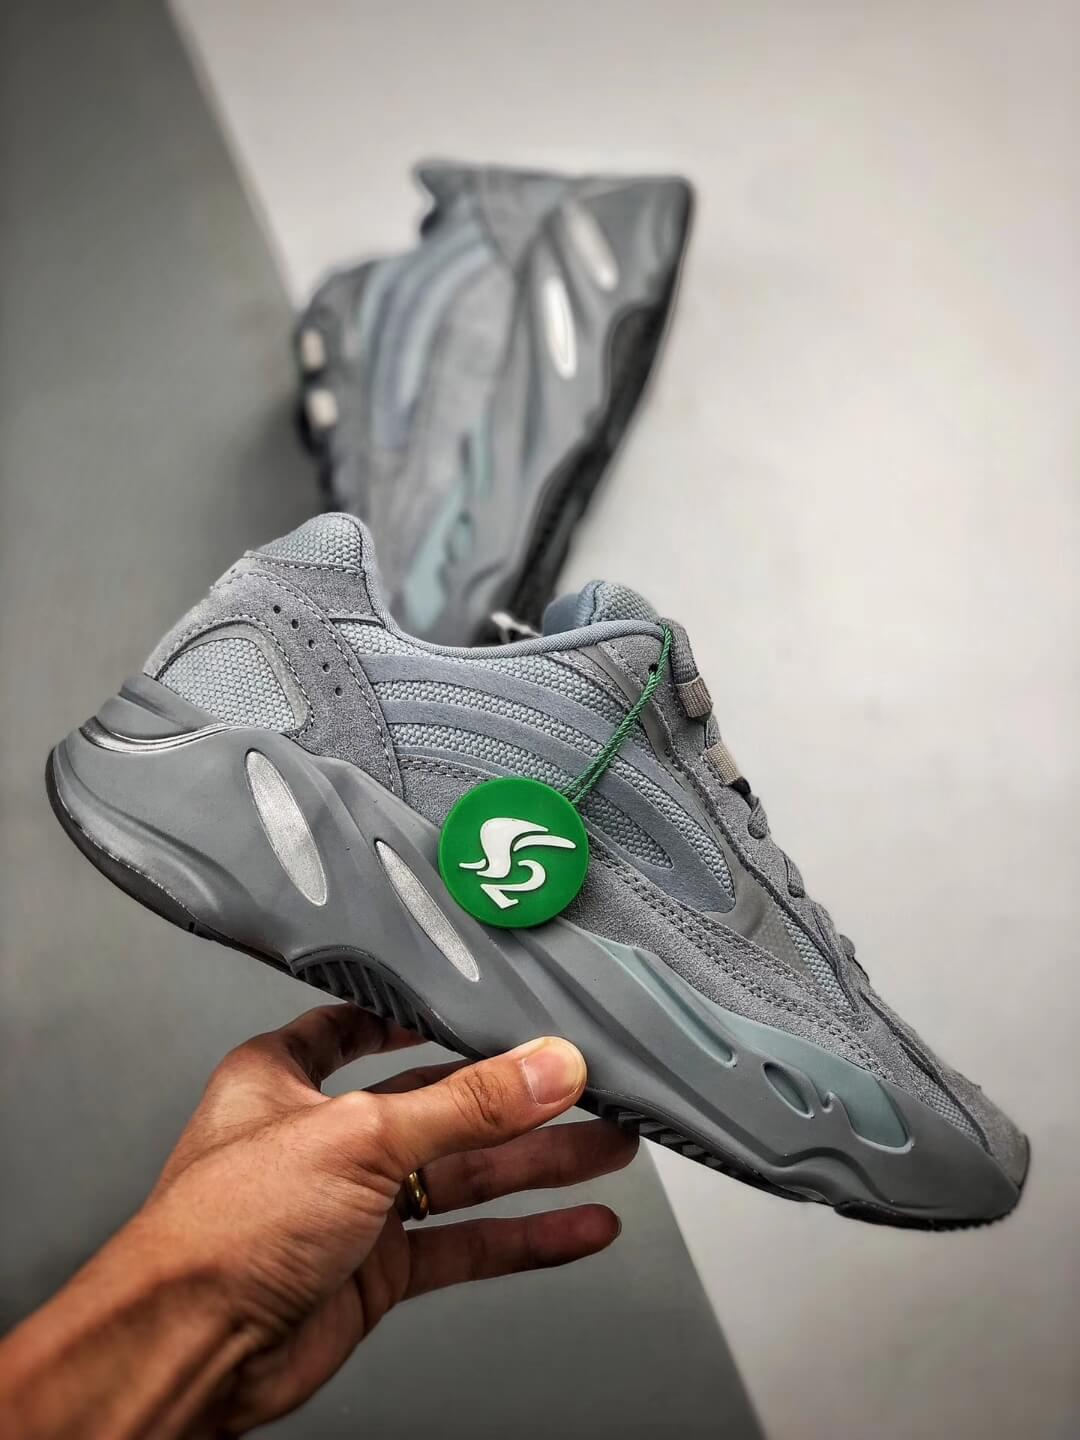 The adidas Yeezy Boost 700 V2 Hospital Blue Sneaker RepShoes 02